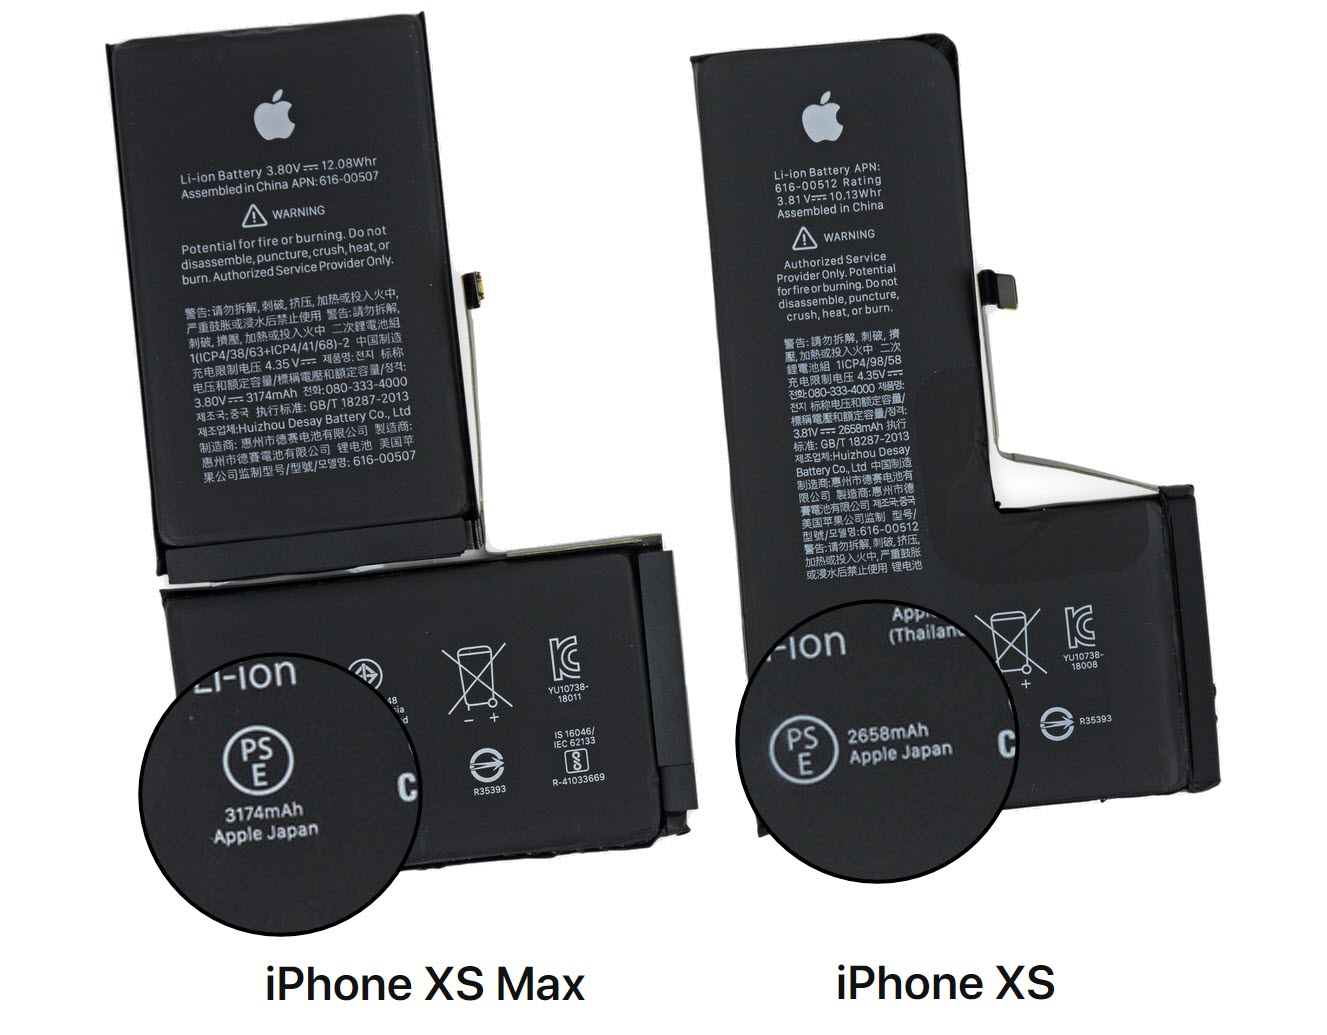 Iphone Xs Iphone Xs Max Battery